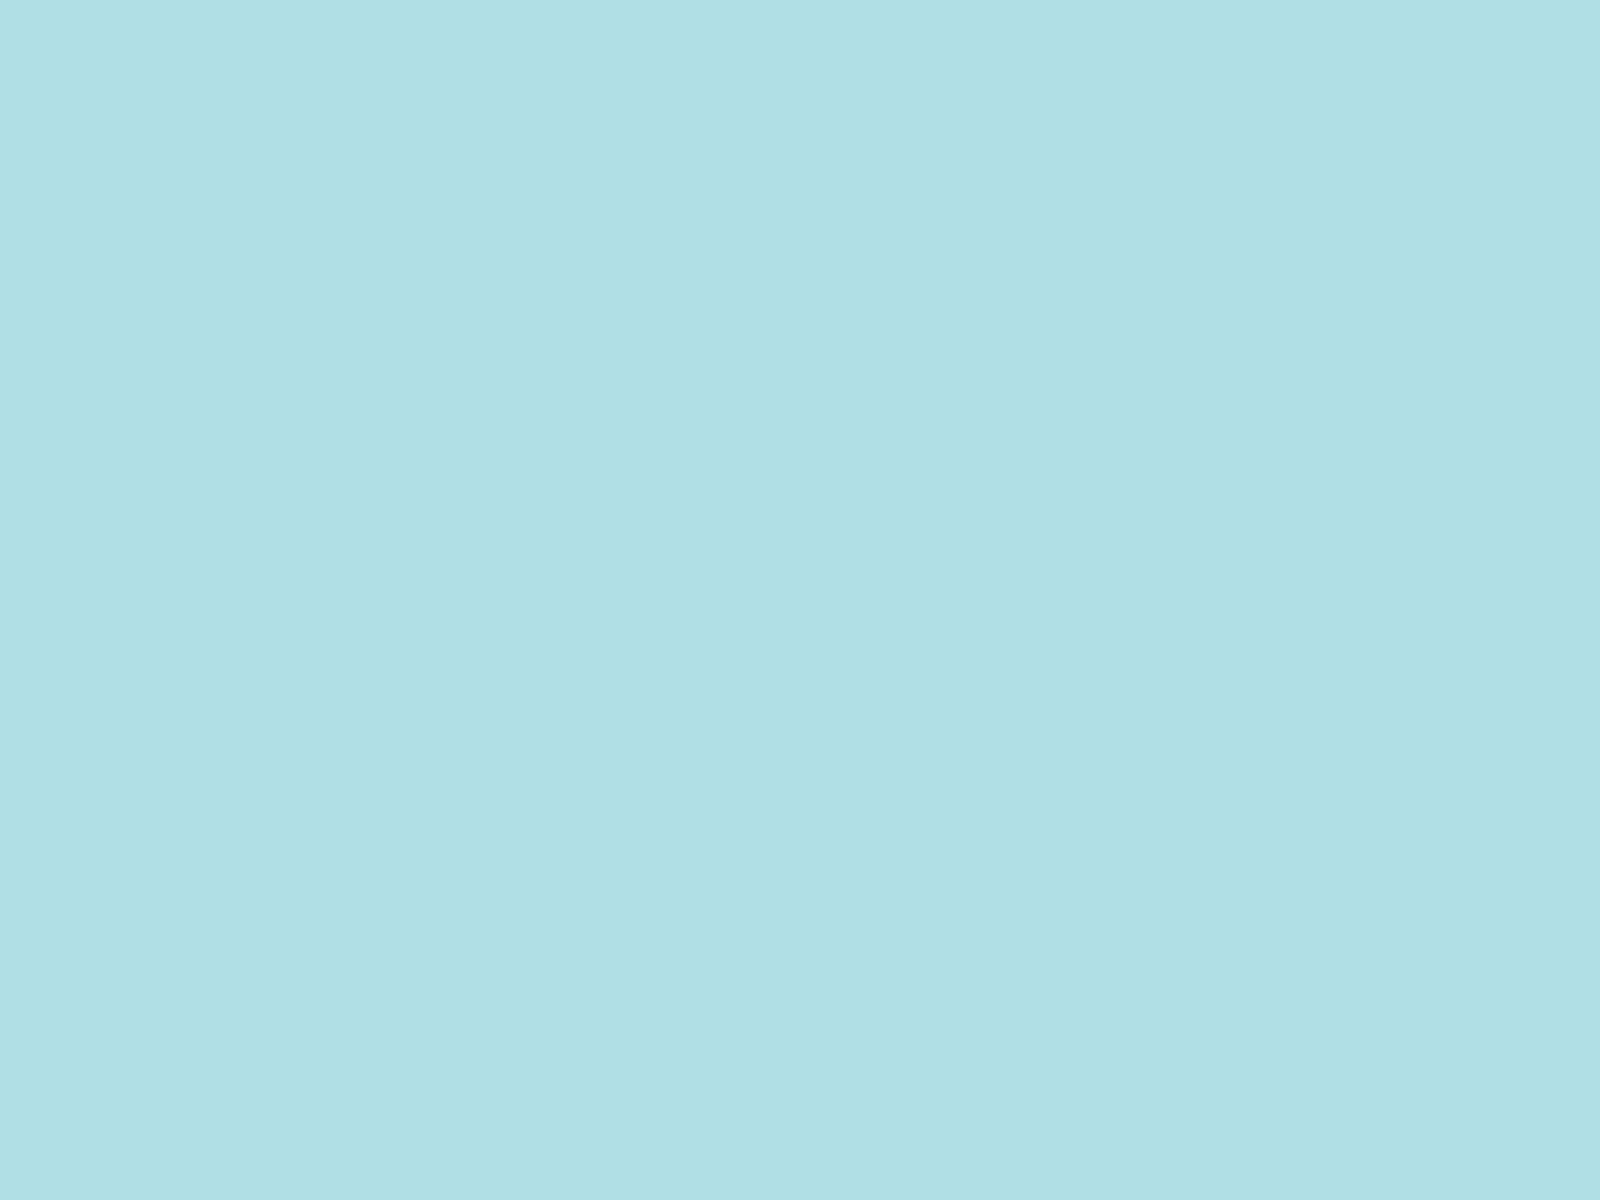 1600x1200 Powder Blue Web Solid Color Background